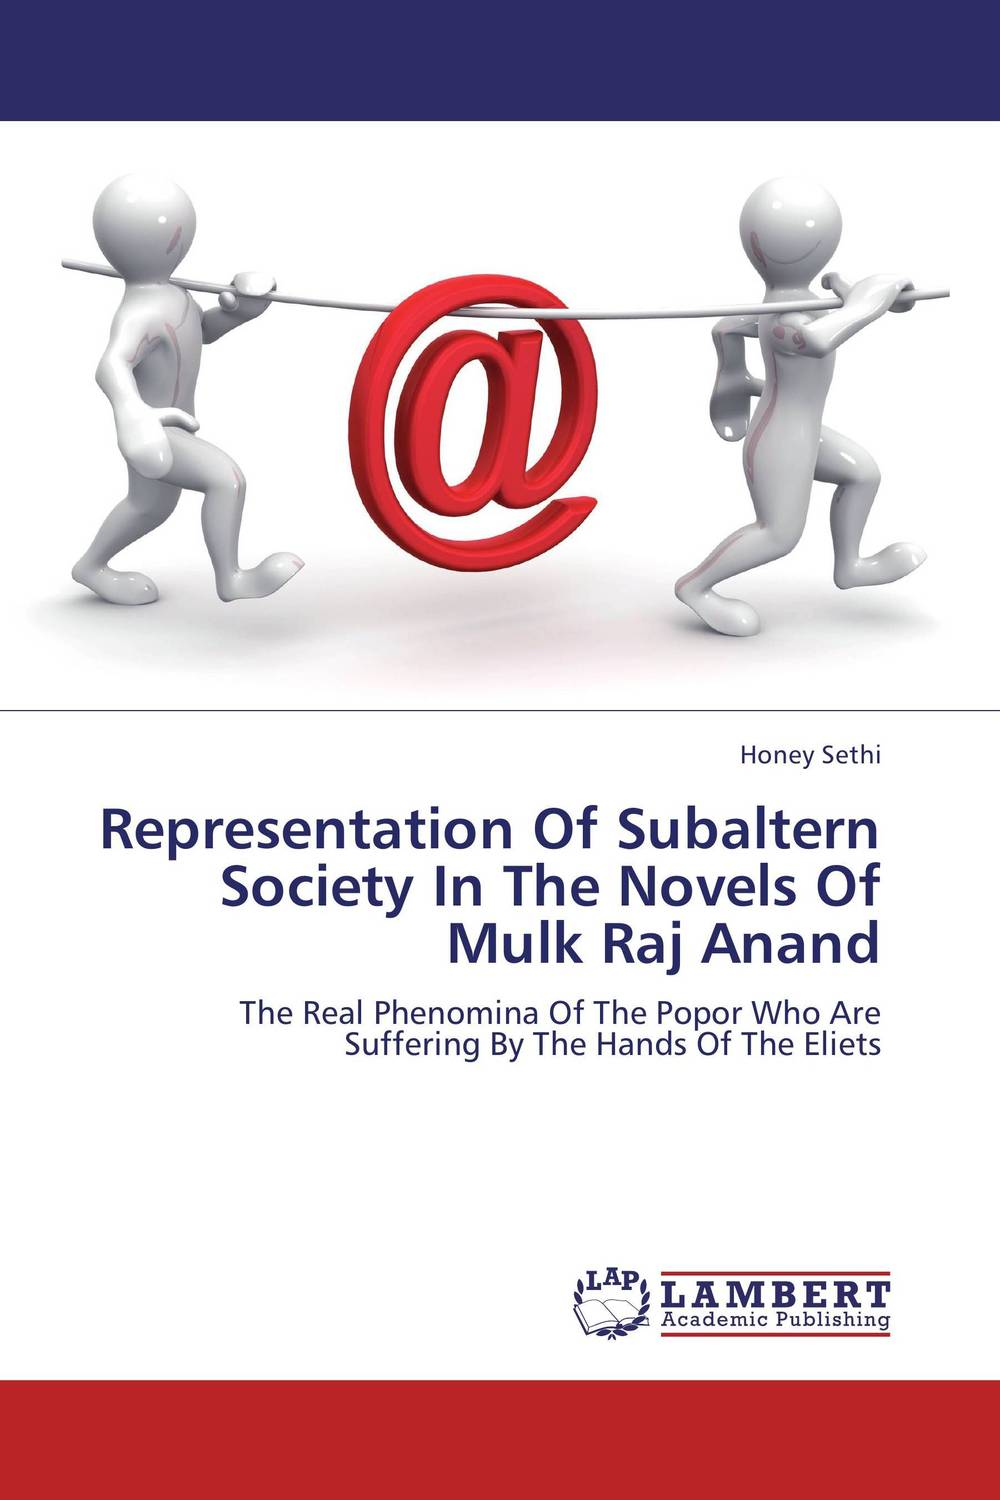 Representation Of Subaltern Society In The Novels Of Mulk Raj Anand kappeler pornography of representation